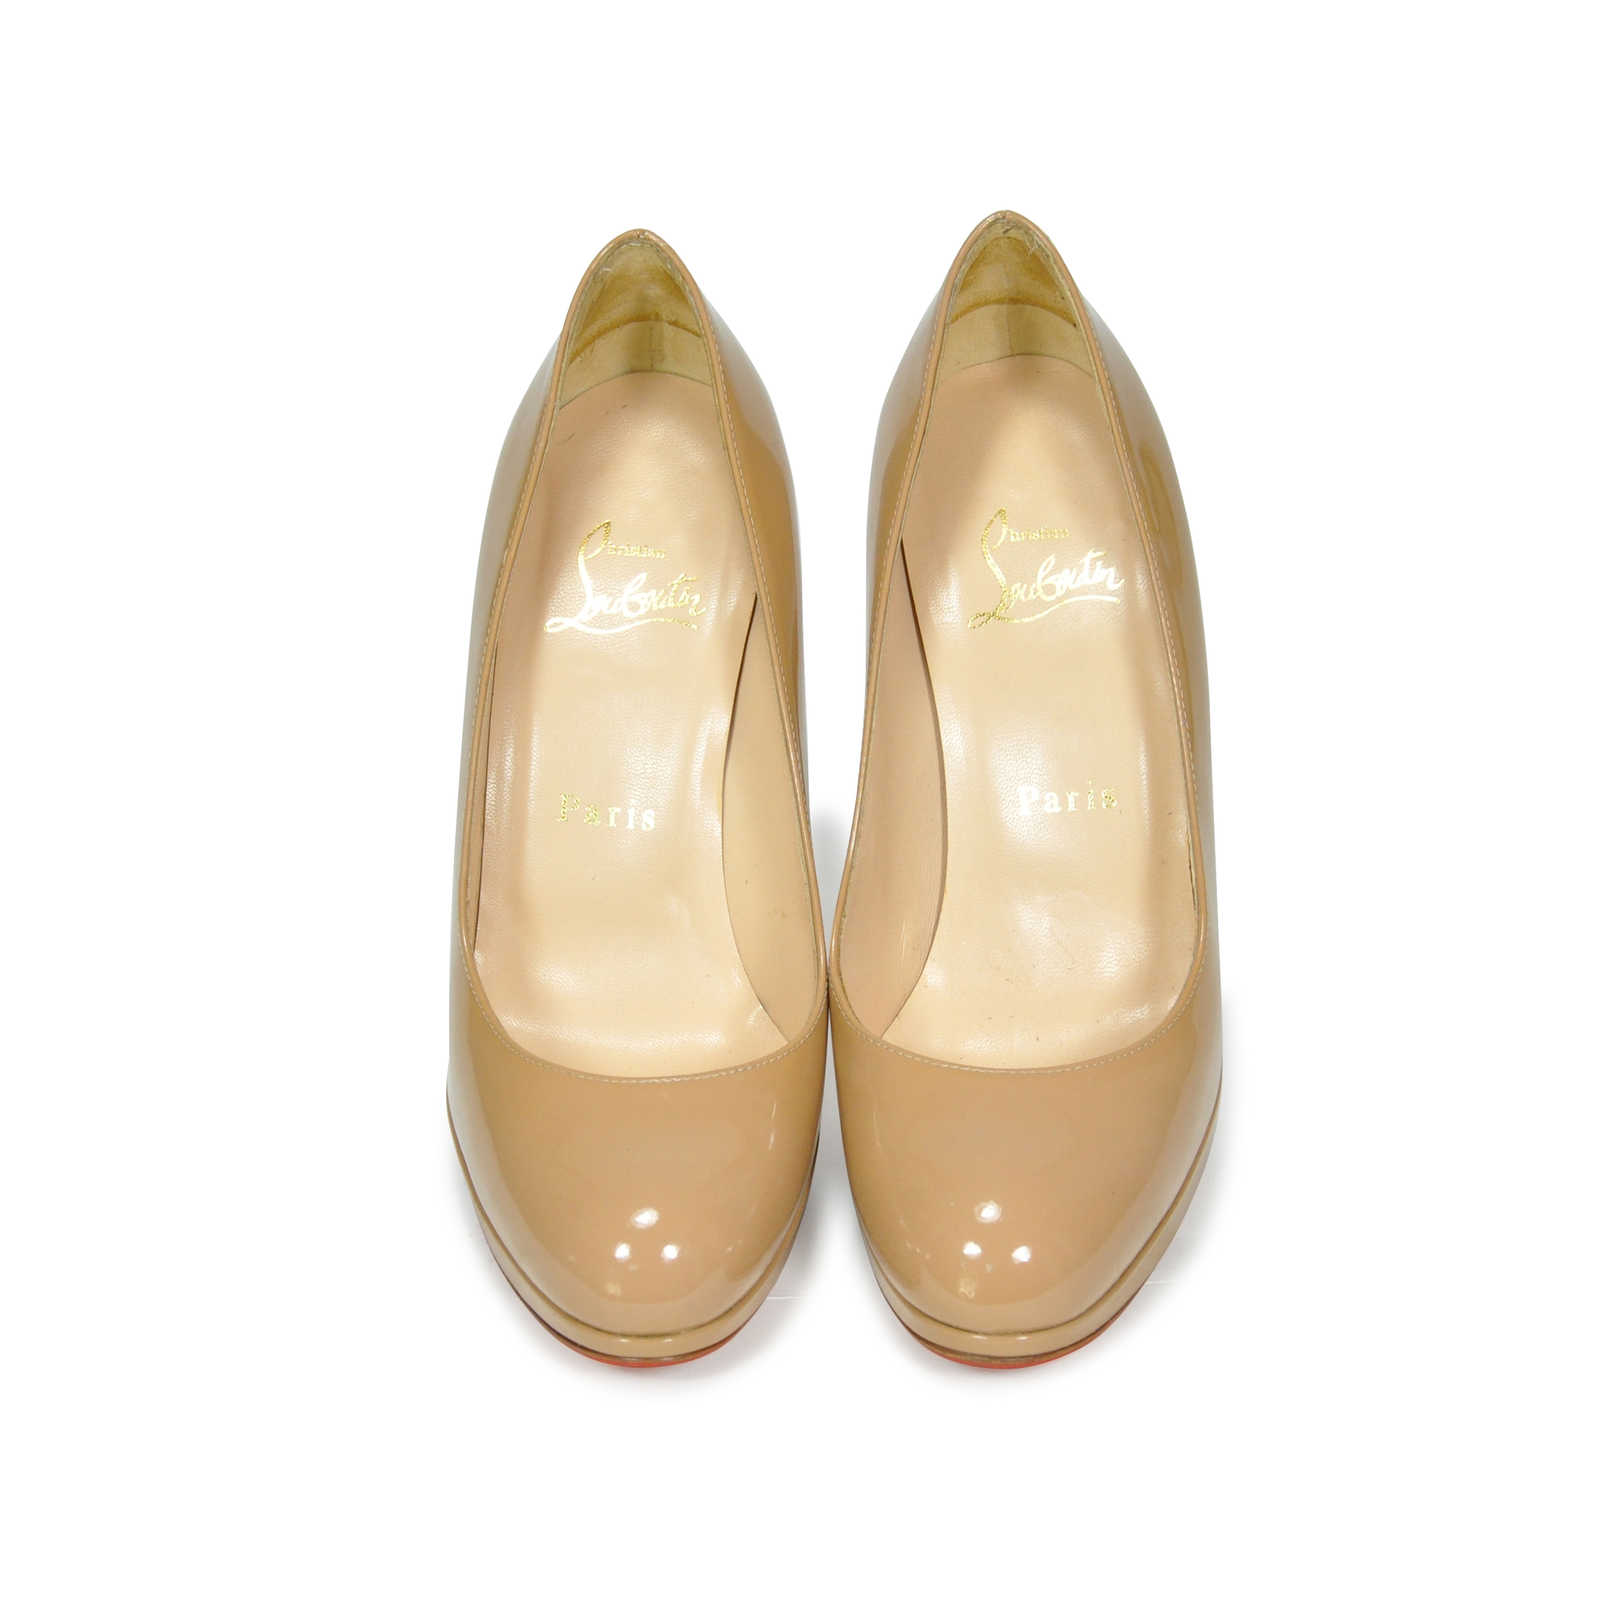 Authentic Second Hand Christian Louboutin New Simple Pumps Pss 183